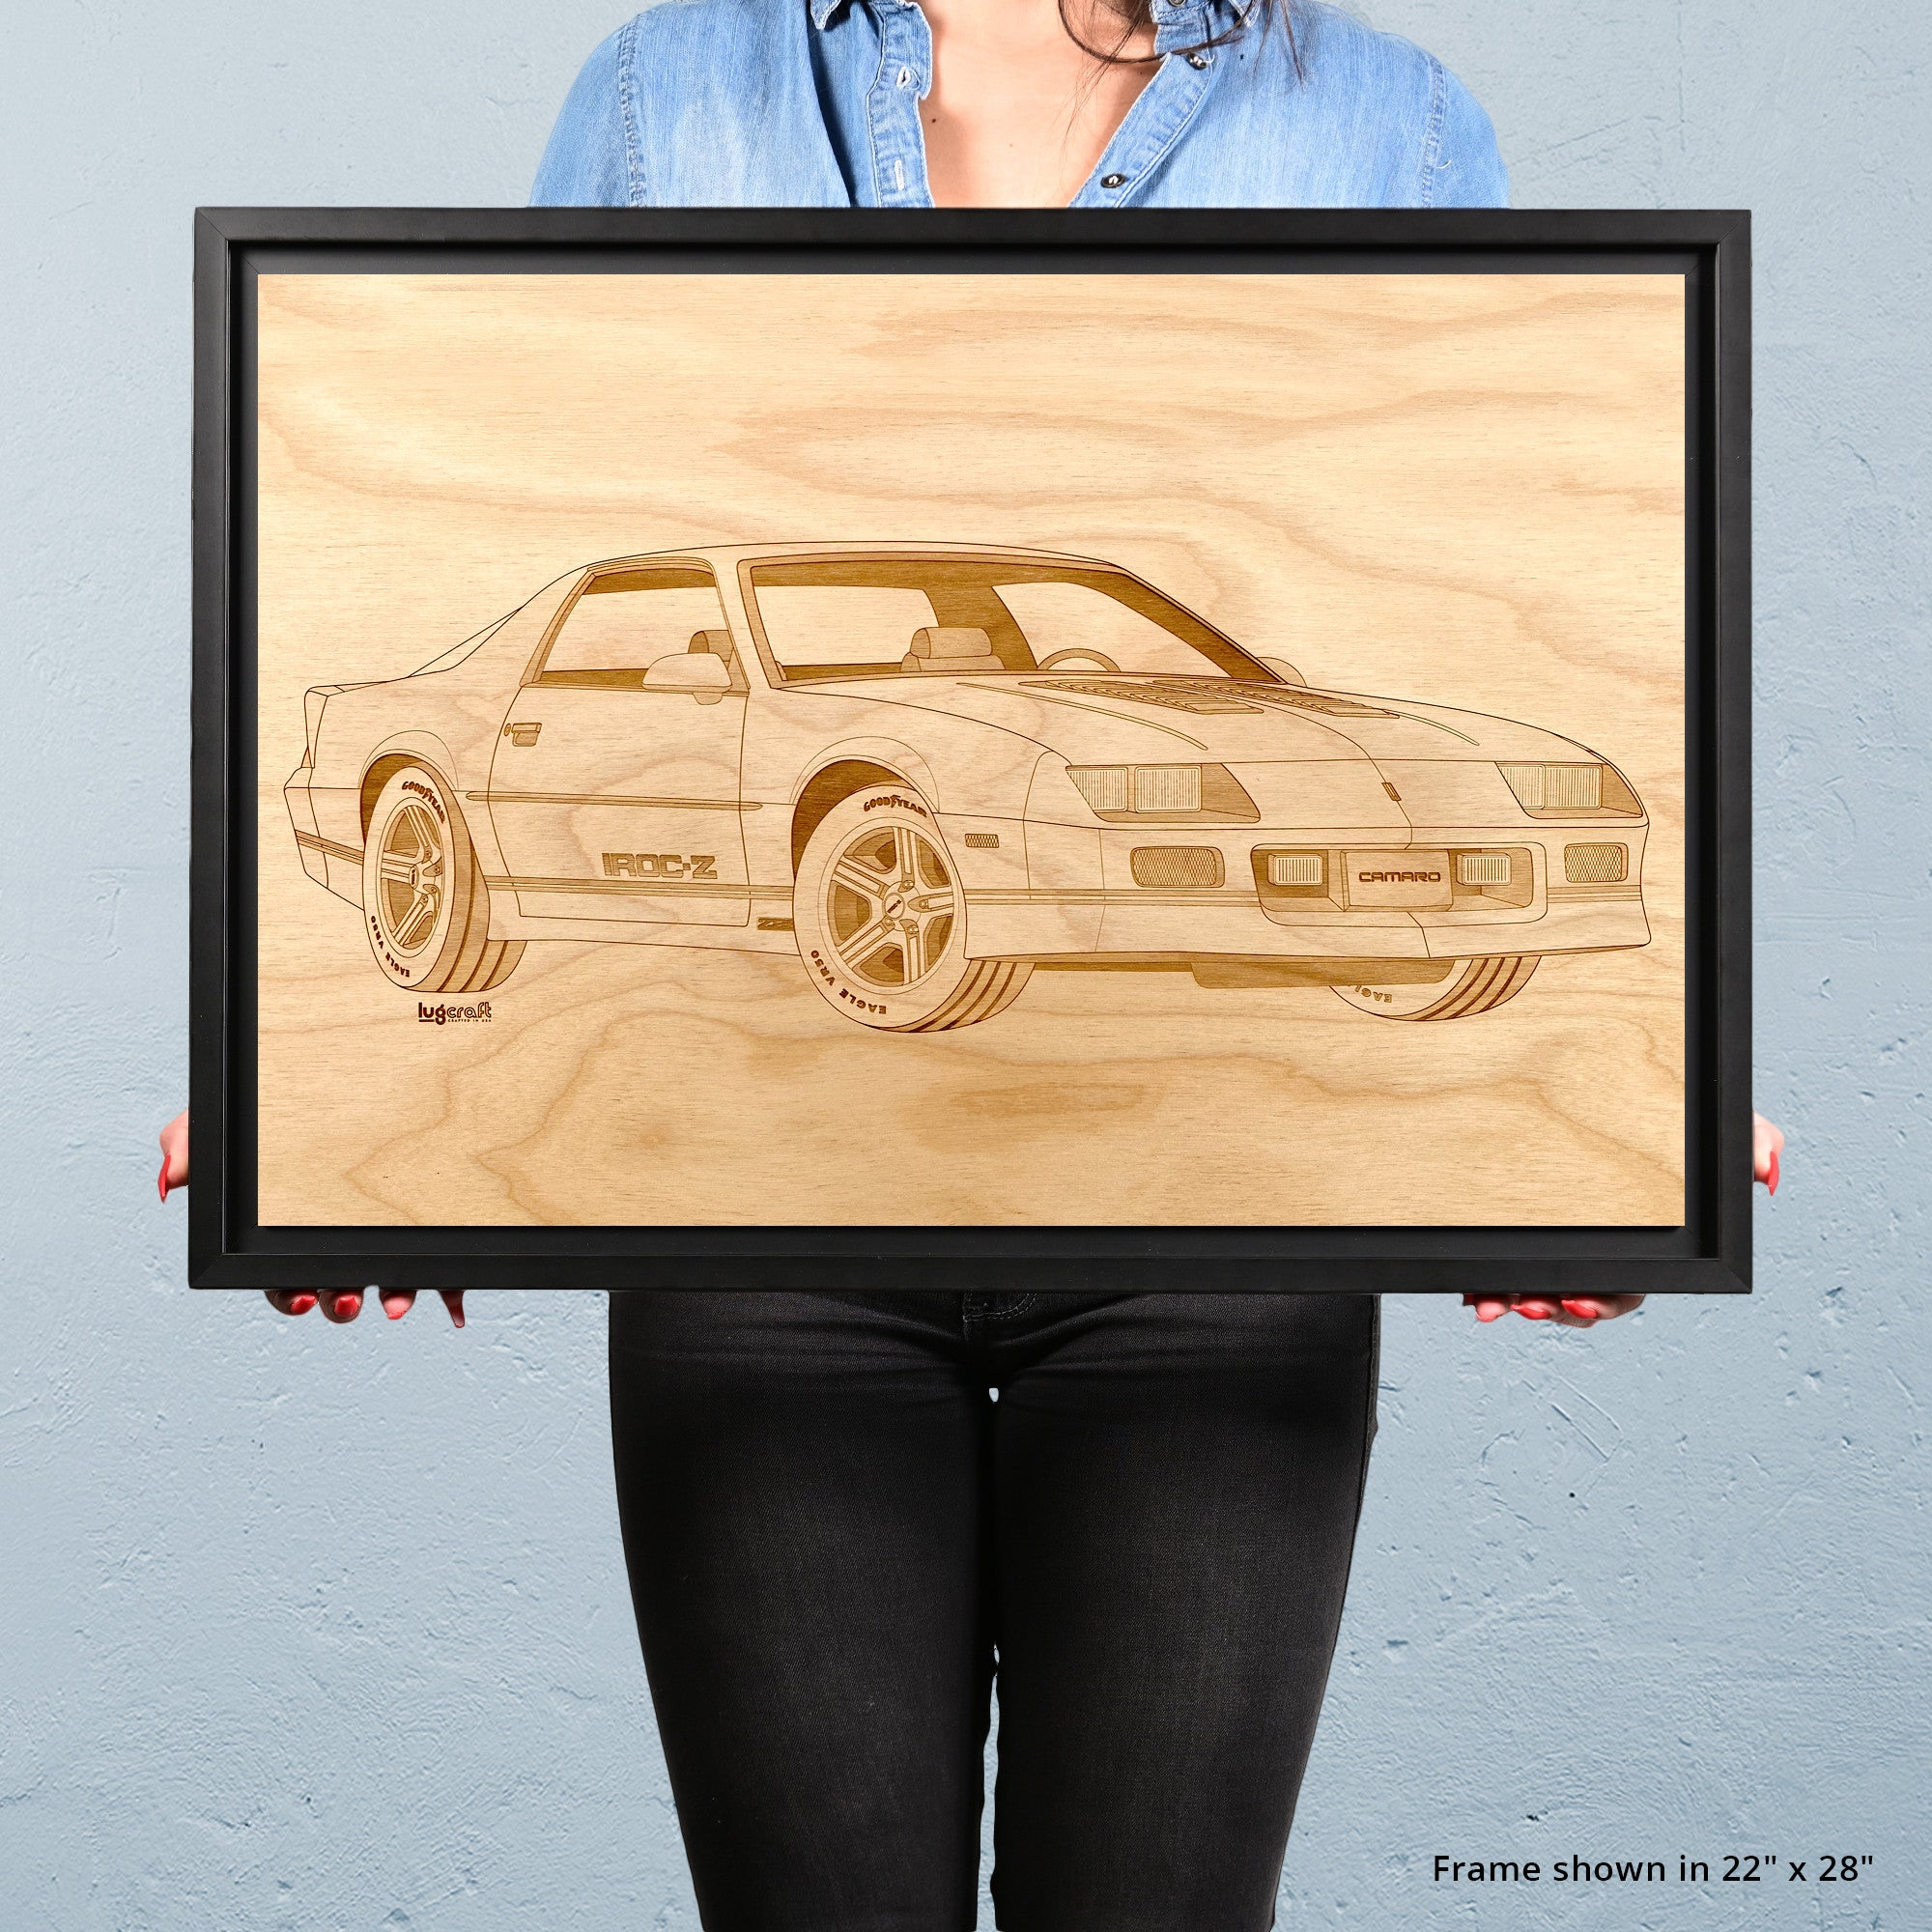 Chevy IROC-Z Camaro Framed Wood Engraved Artwork - Lugcraft